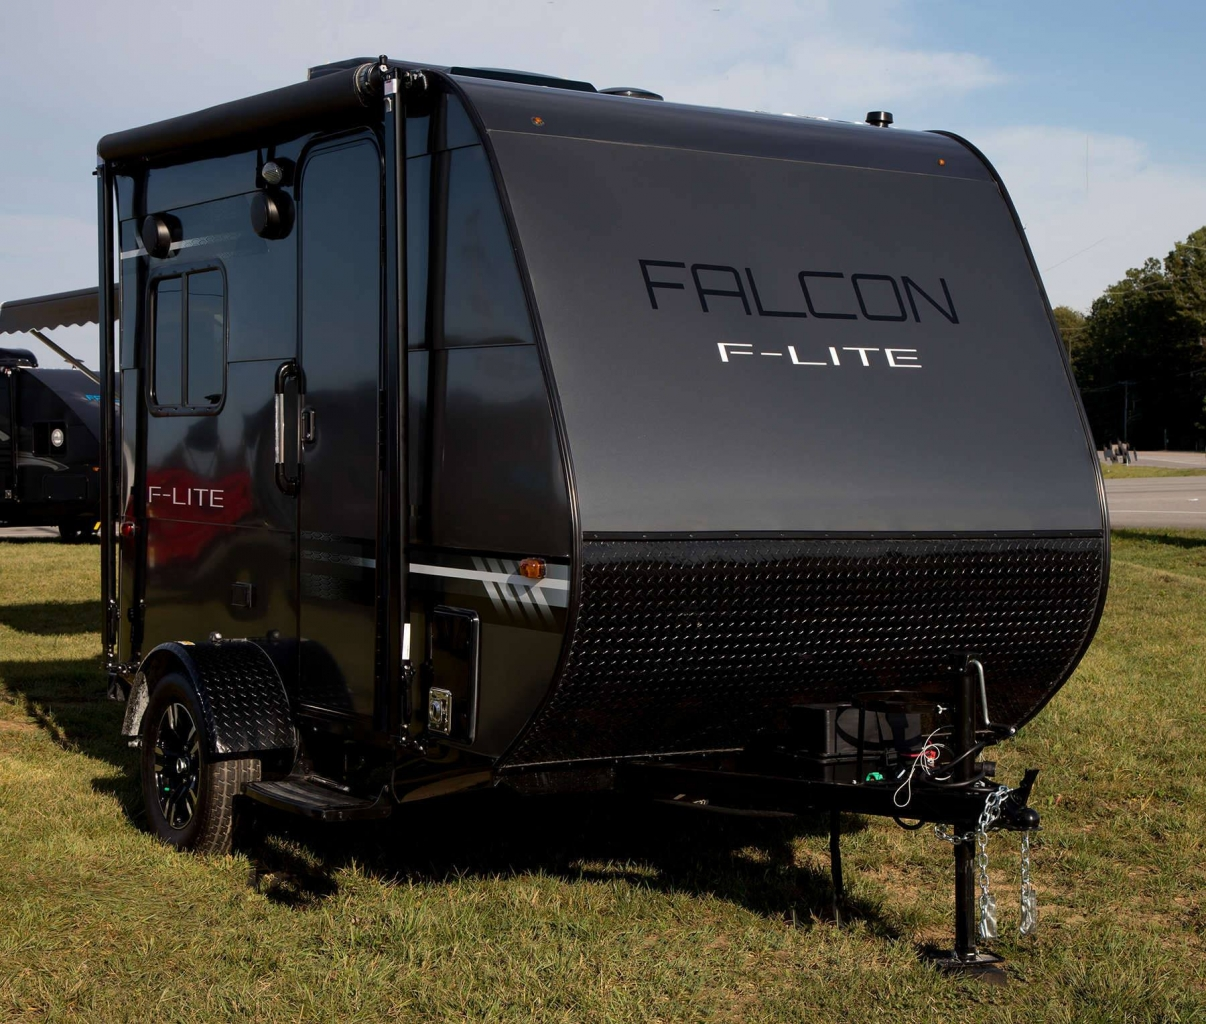 Travel Campers: Falcon FL-14, F-20 Ultralite Travel Trailers By Travel